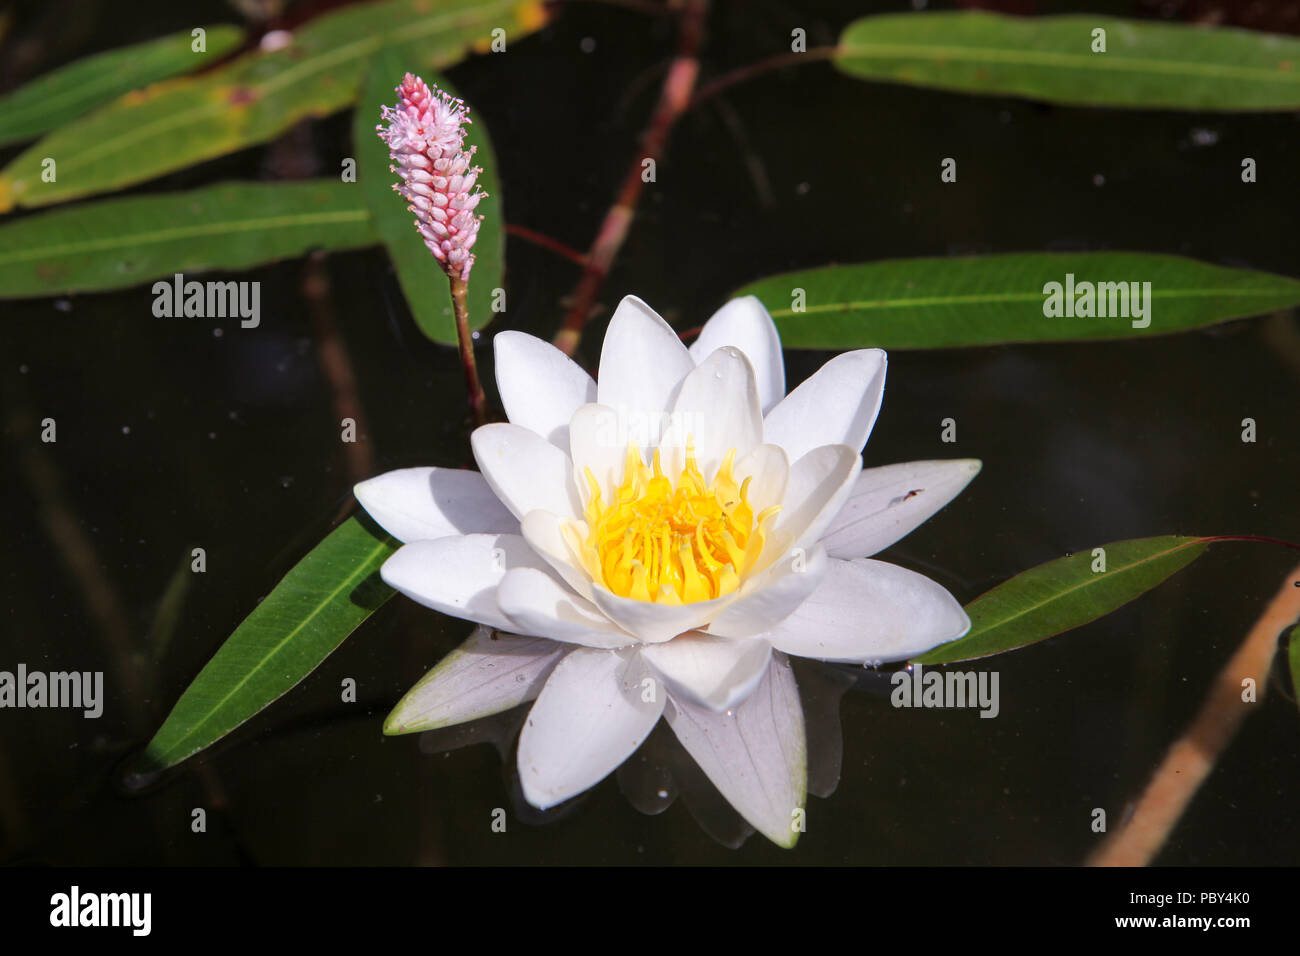 Beautiful lotus flower stock photos beautiful lotus flower stock beautiful lotus flower white nymphaea alba or water lily among green leaves with yellow pollen izmirmasajfo